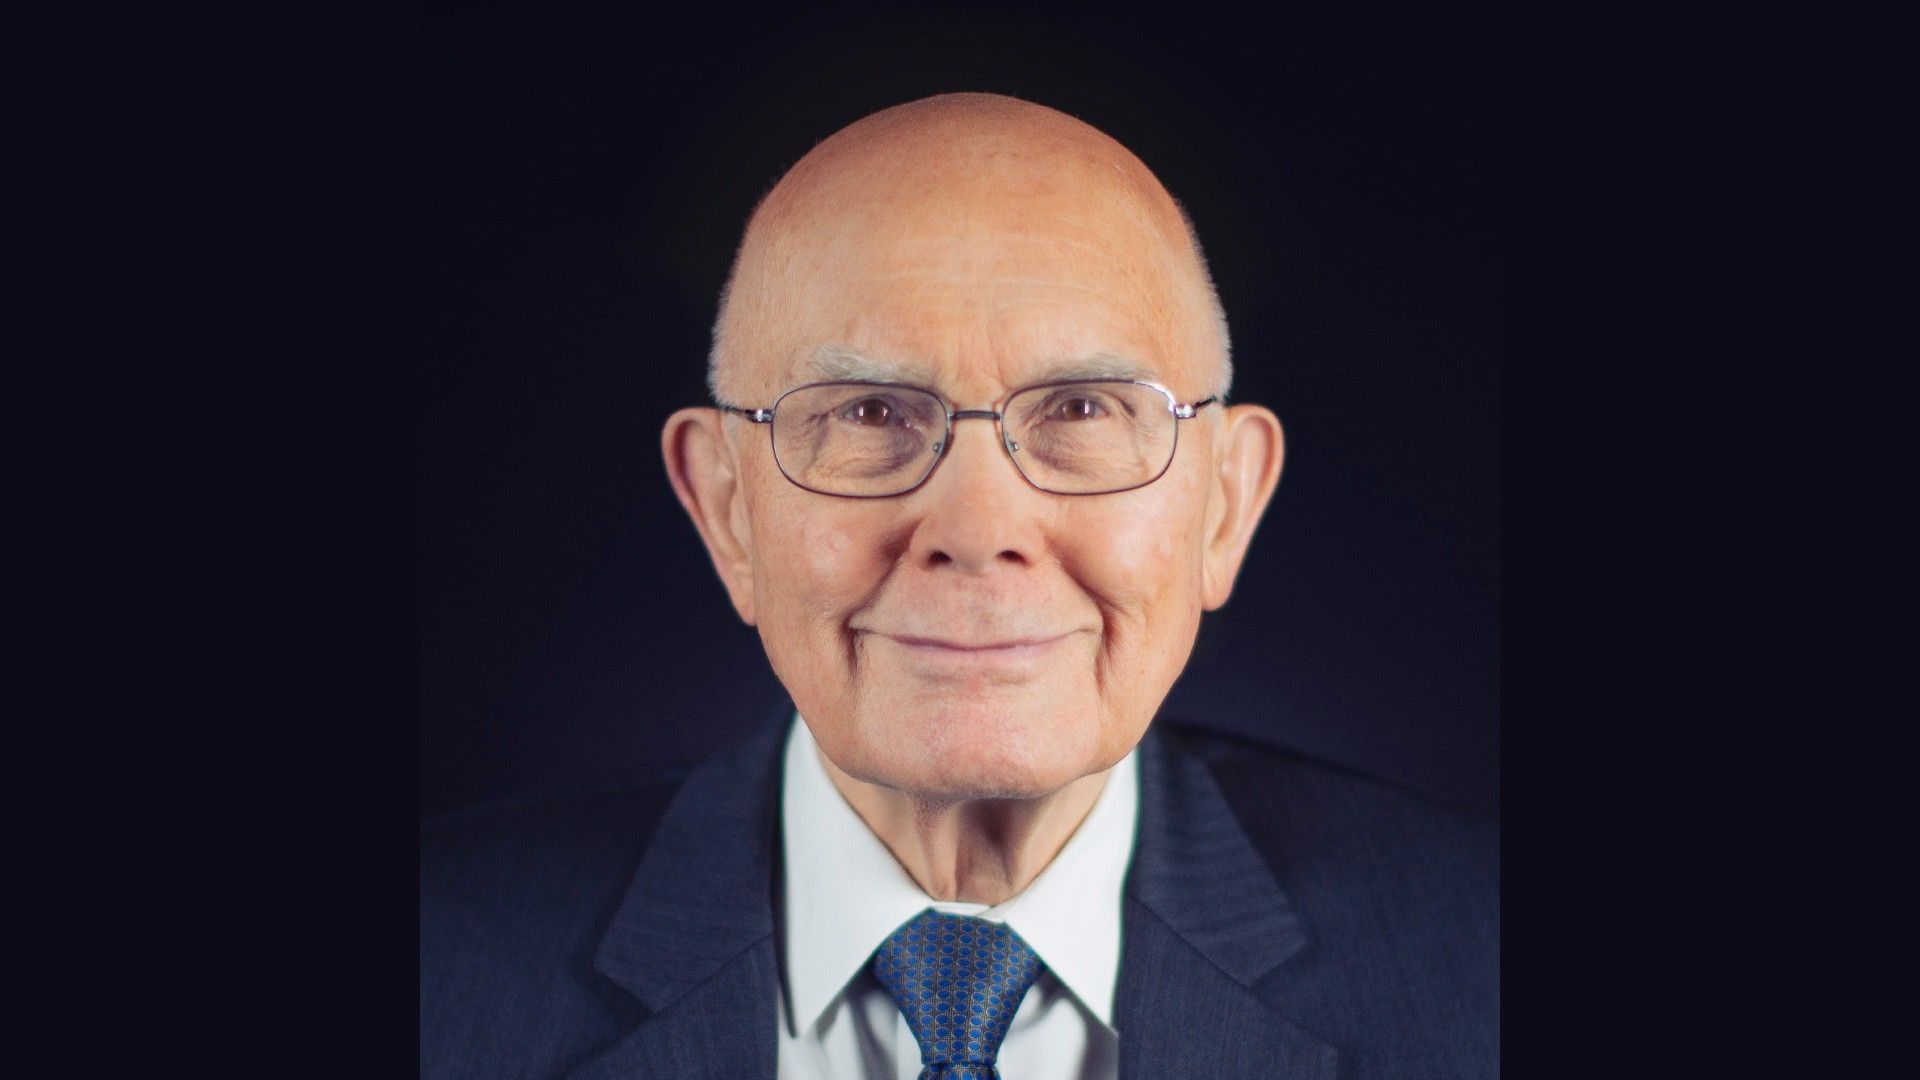 How do you #HearHim? President Dallin H. Oaks says that the Lord can bless us and bless others if we #HearHim.